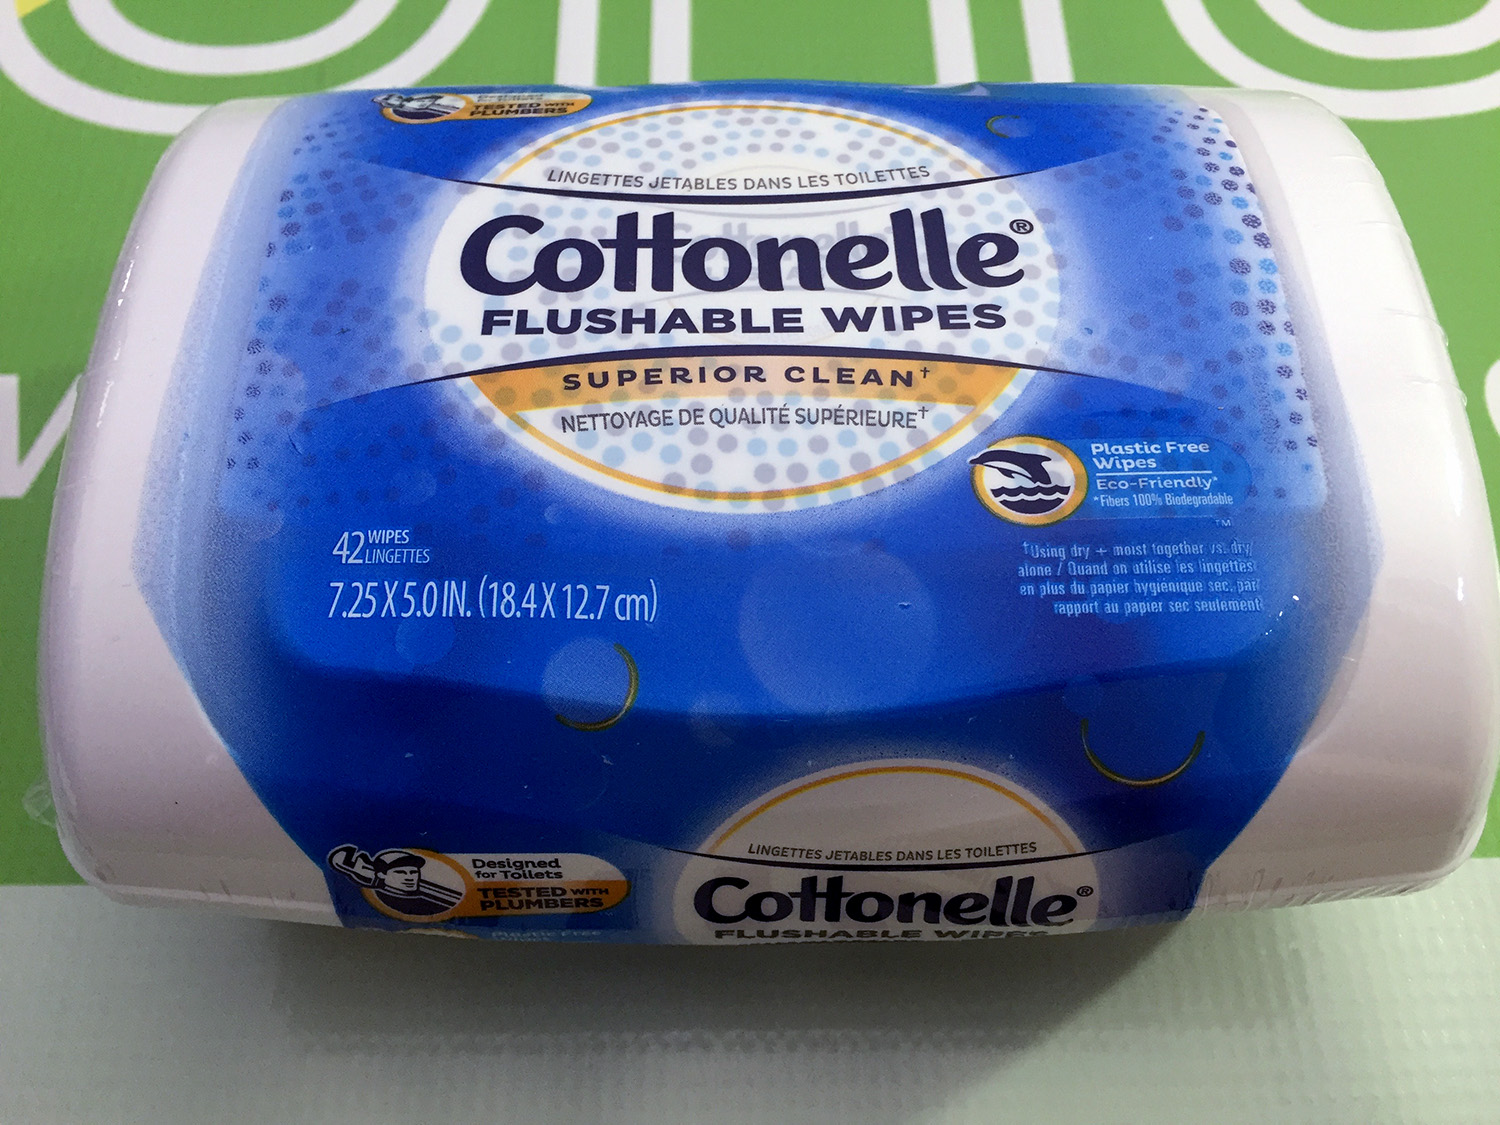 Cottonelle Flushable Wipes (42 wipes)